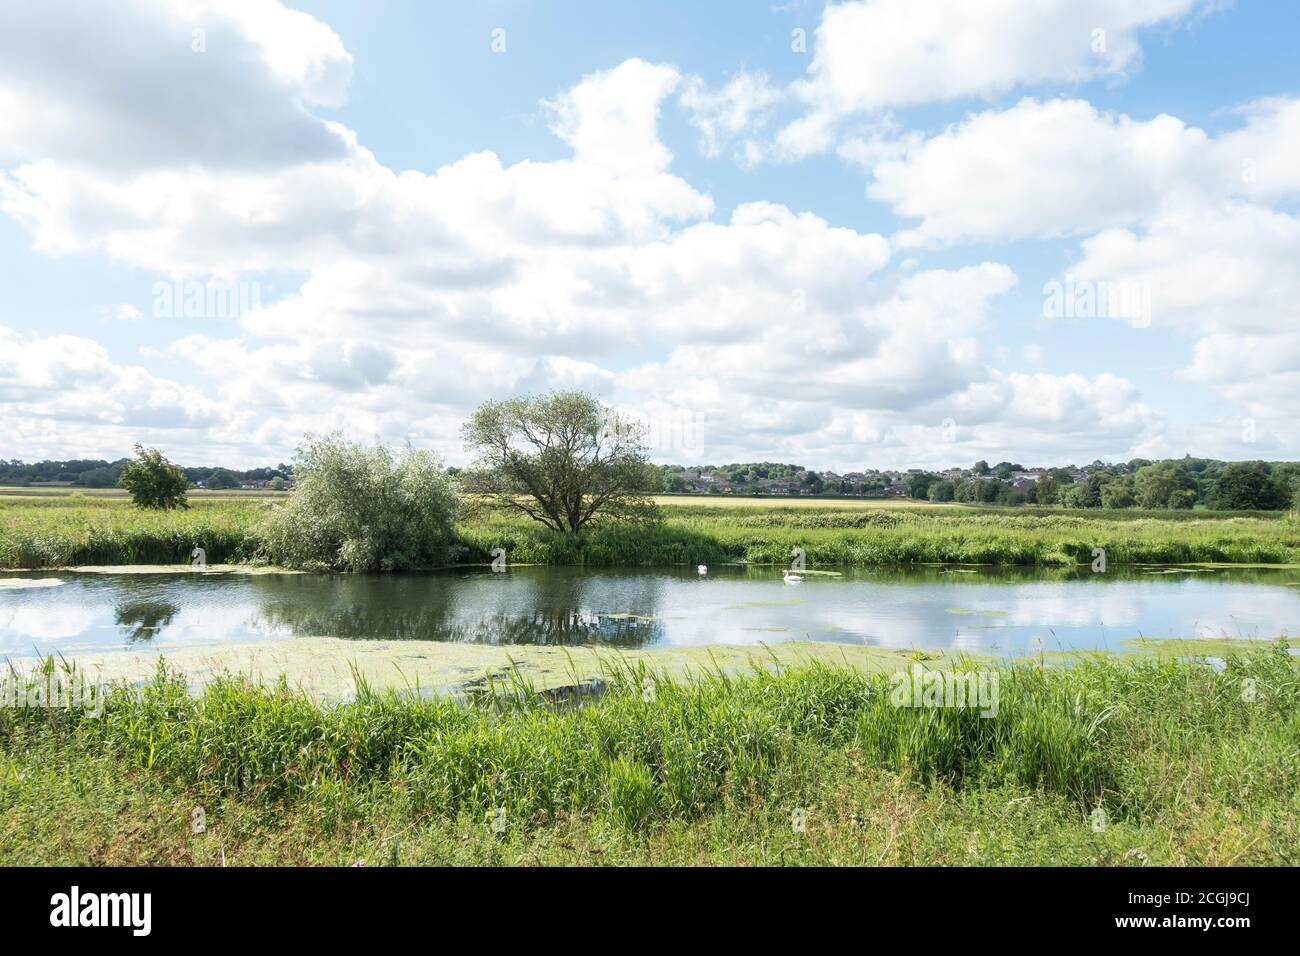 looking-over-river-withamfrom-the-viking-way-towards-washingborough-lincolnshire-june-2020-2CGJ9CJ.jpg